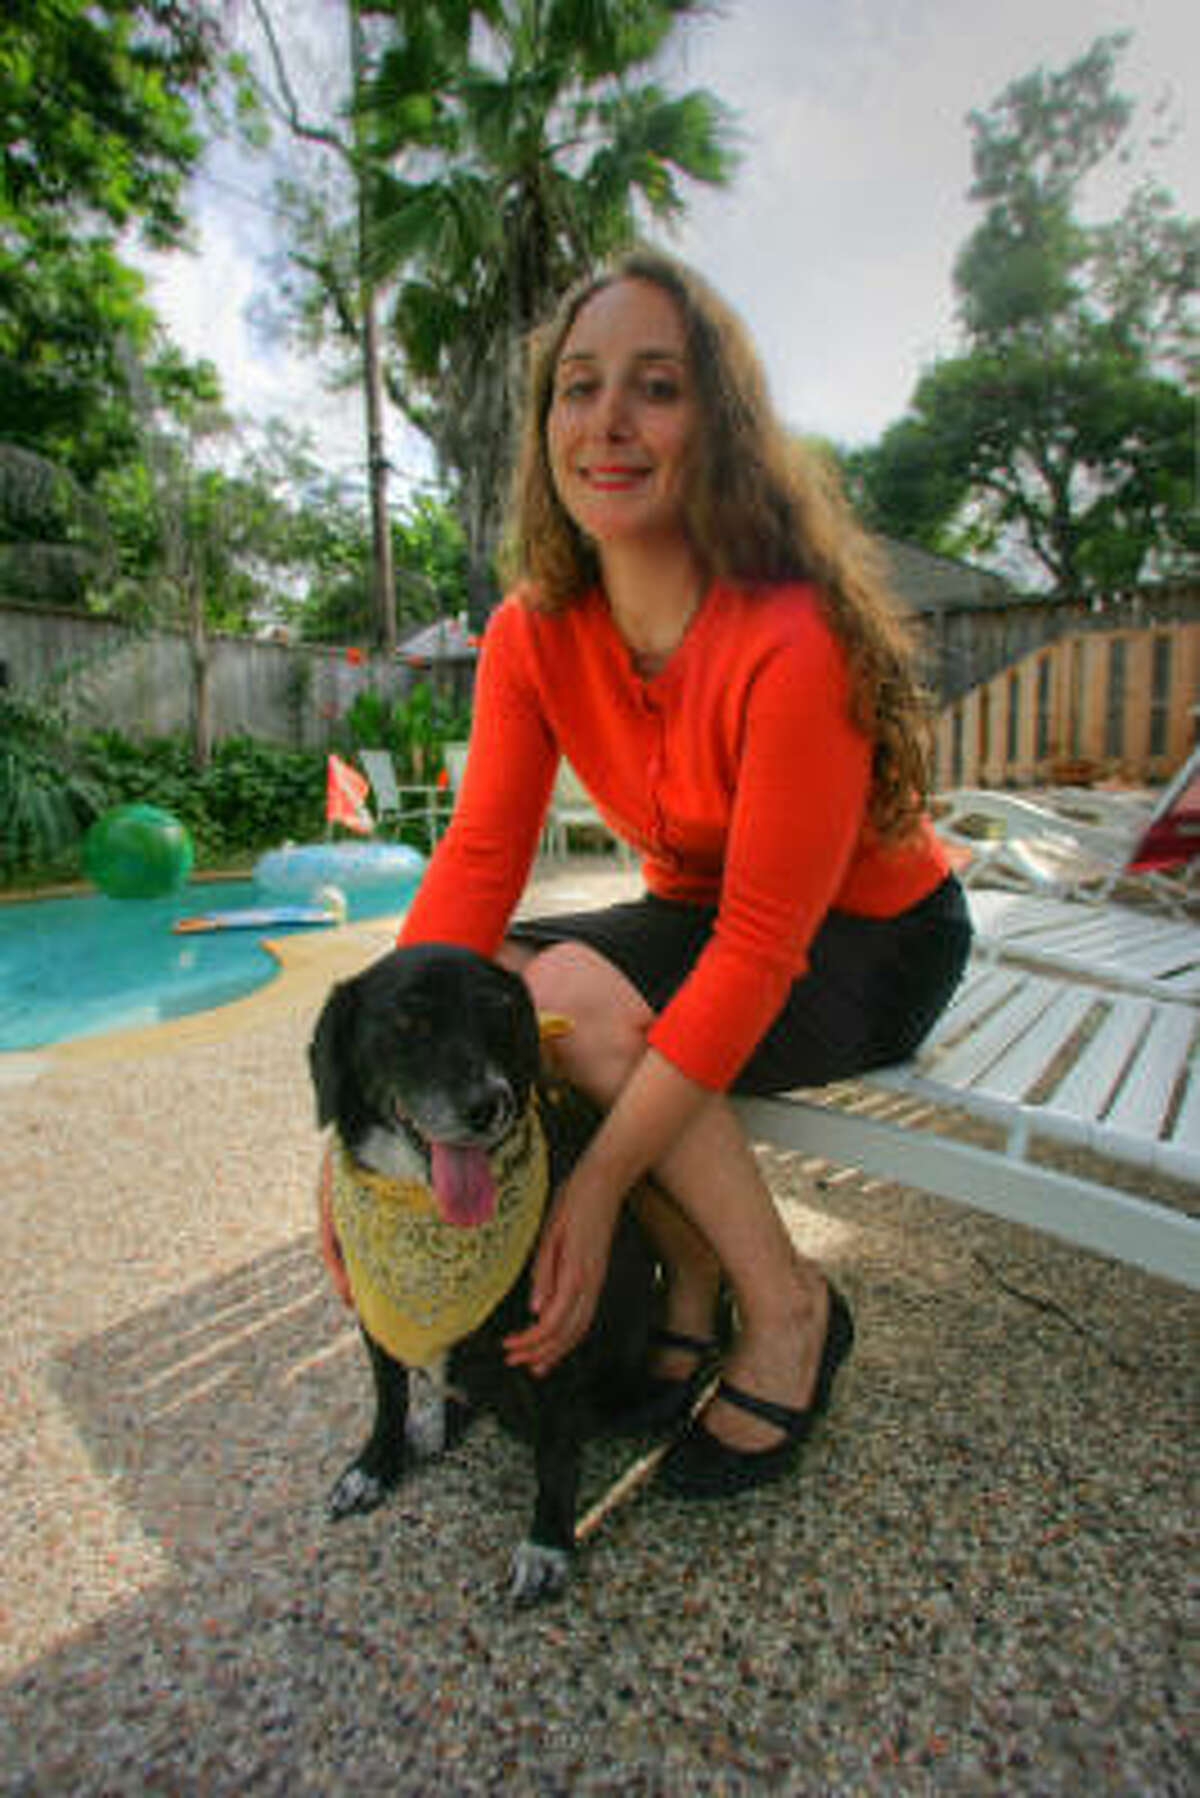 IN THE RUNNING: Kassy Rodriguez and her dog, Dora, need votes to win $500,000 for the renovation of a dog park.